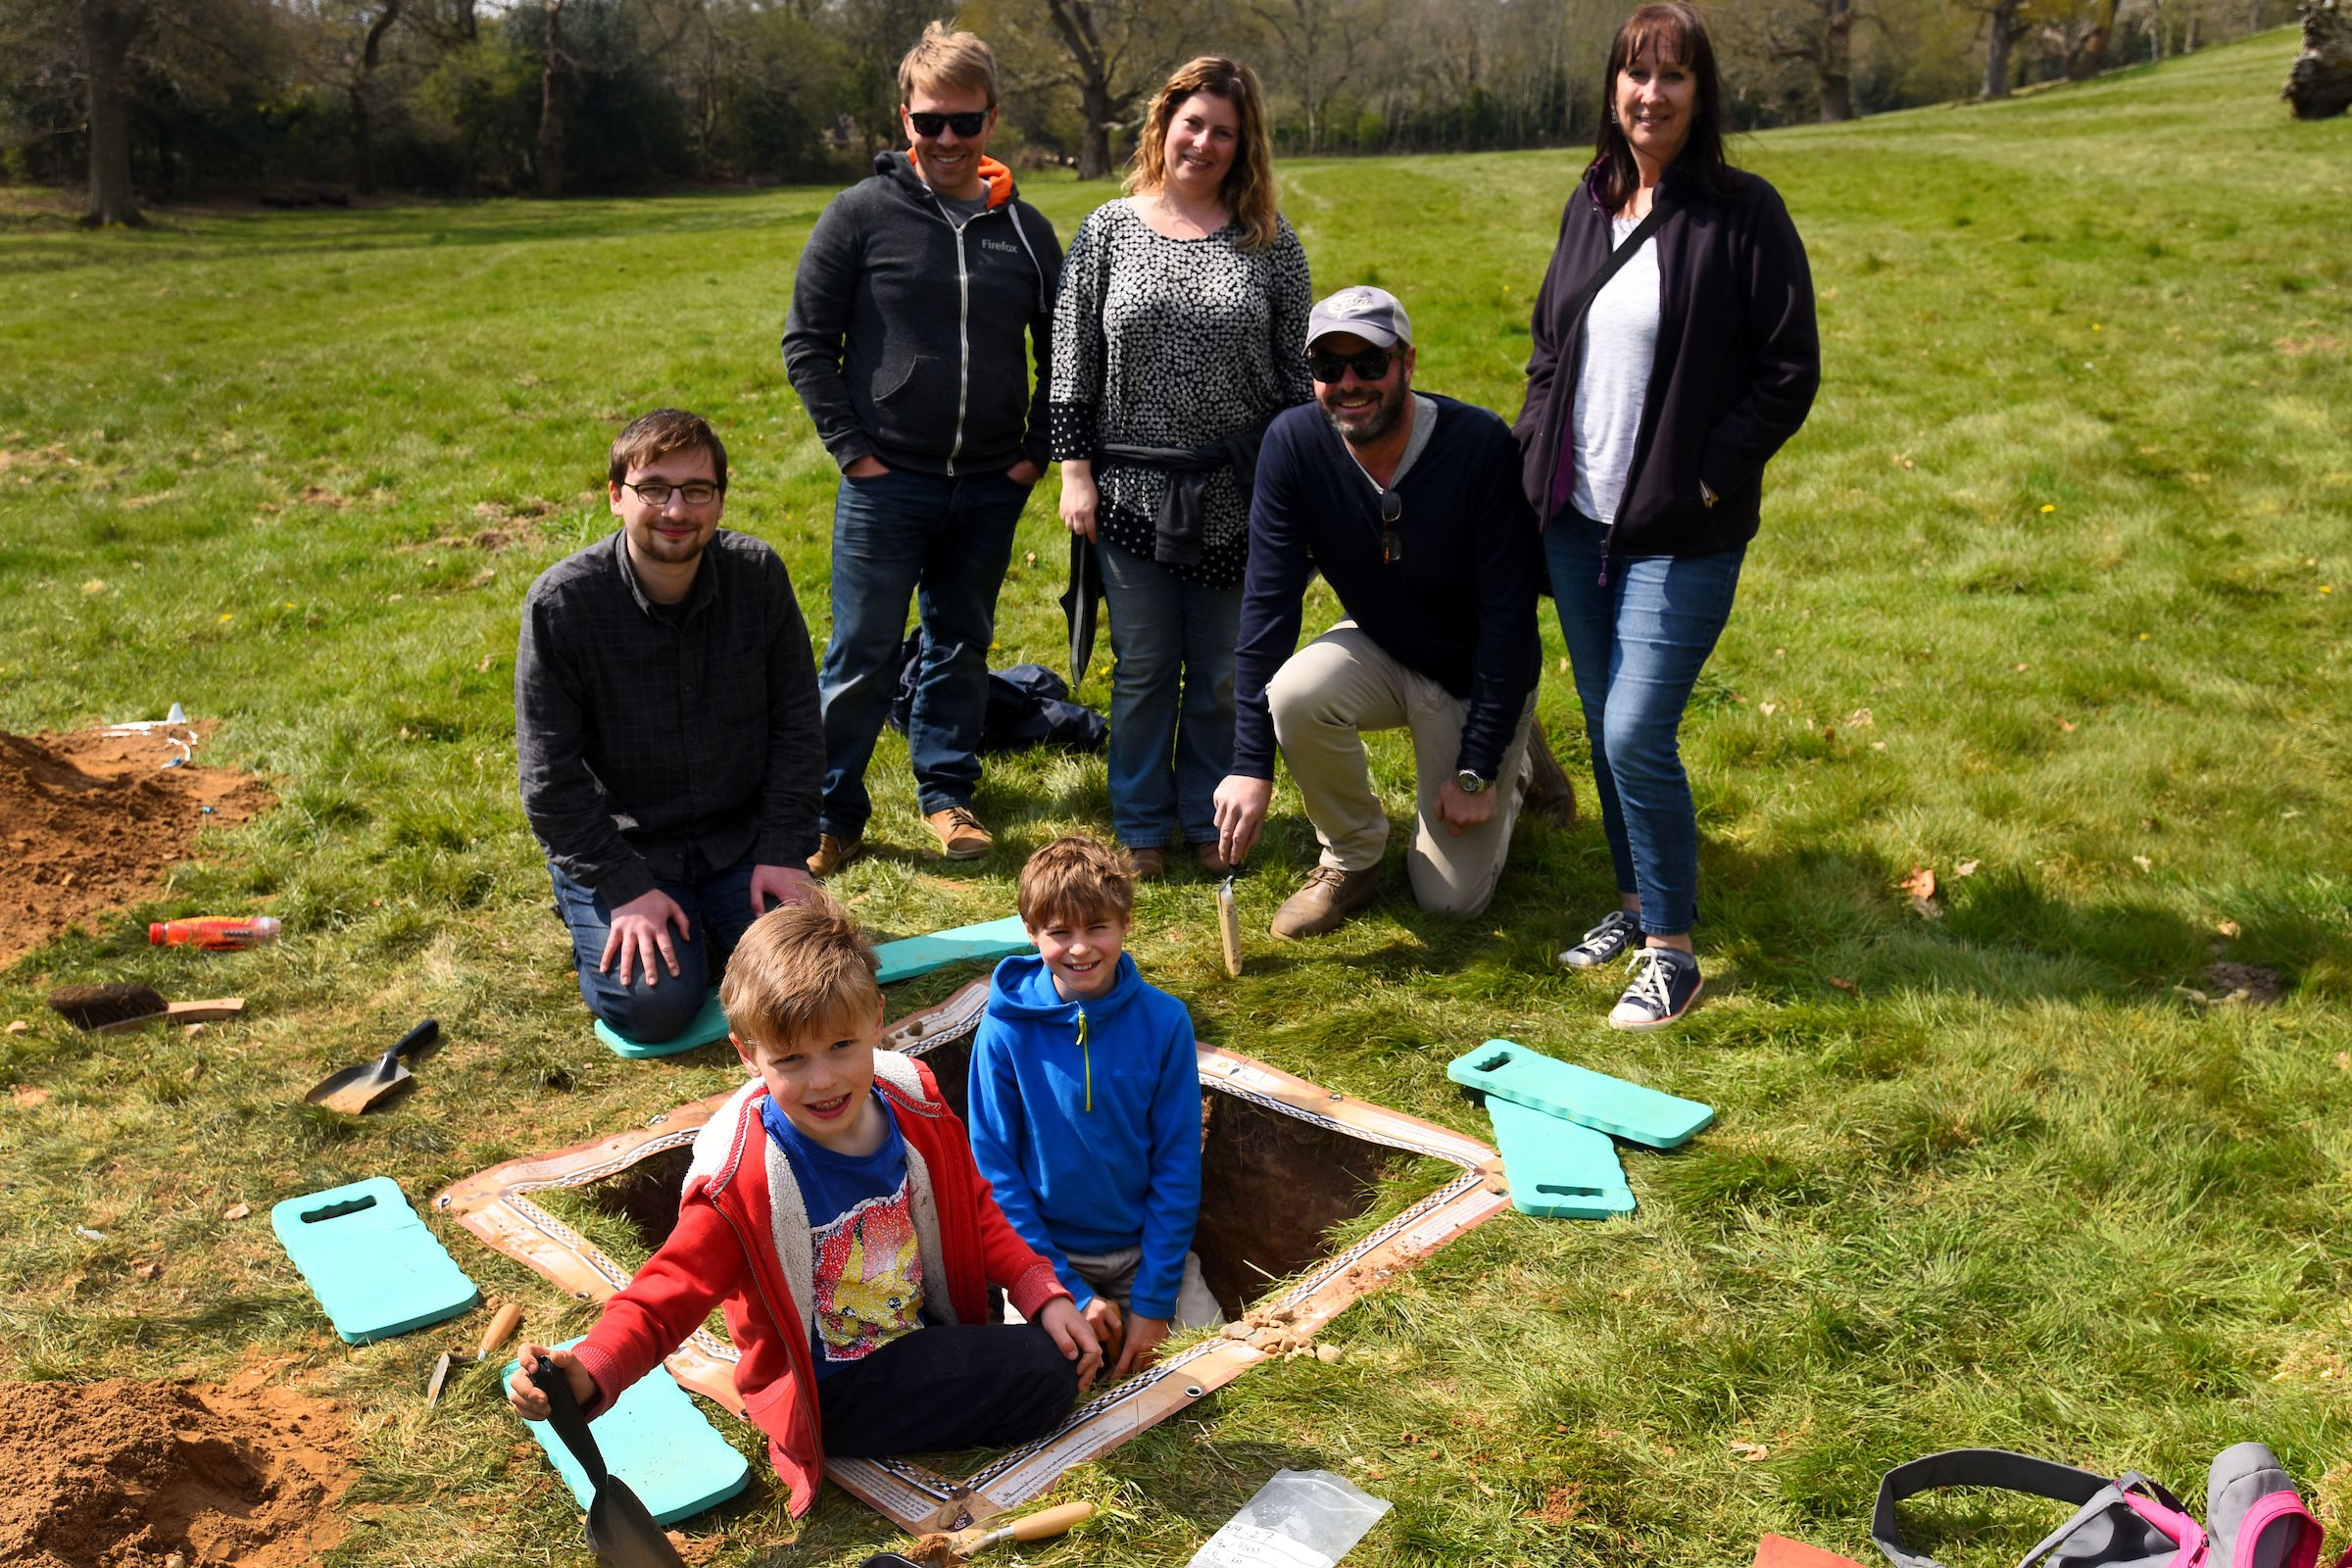 Dig Burley family event